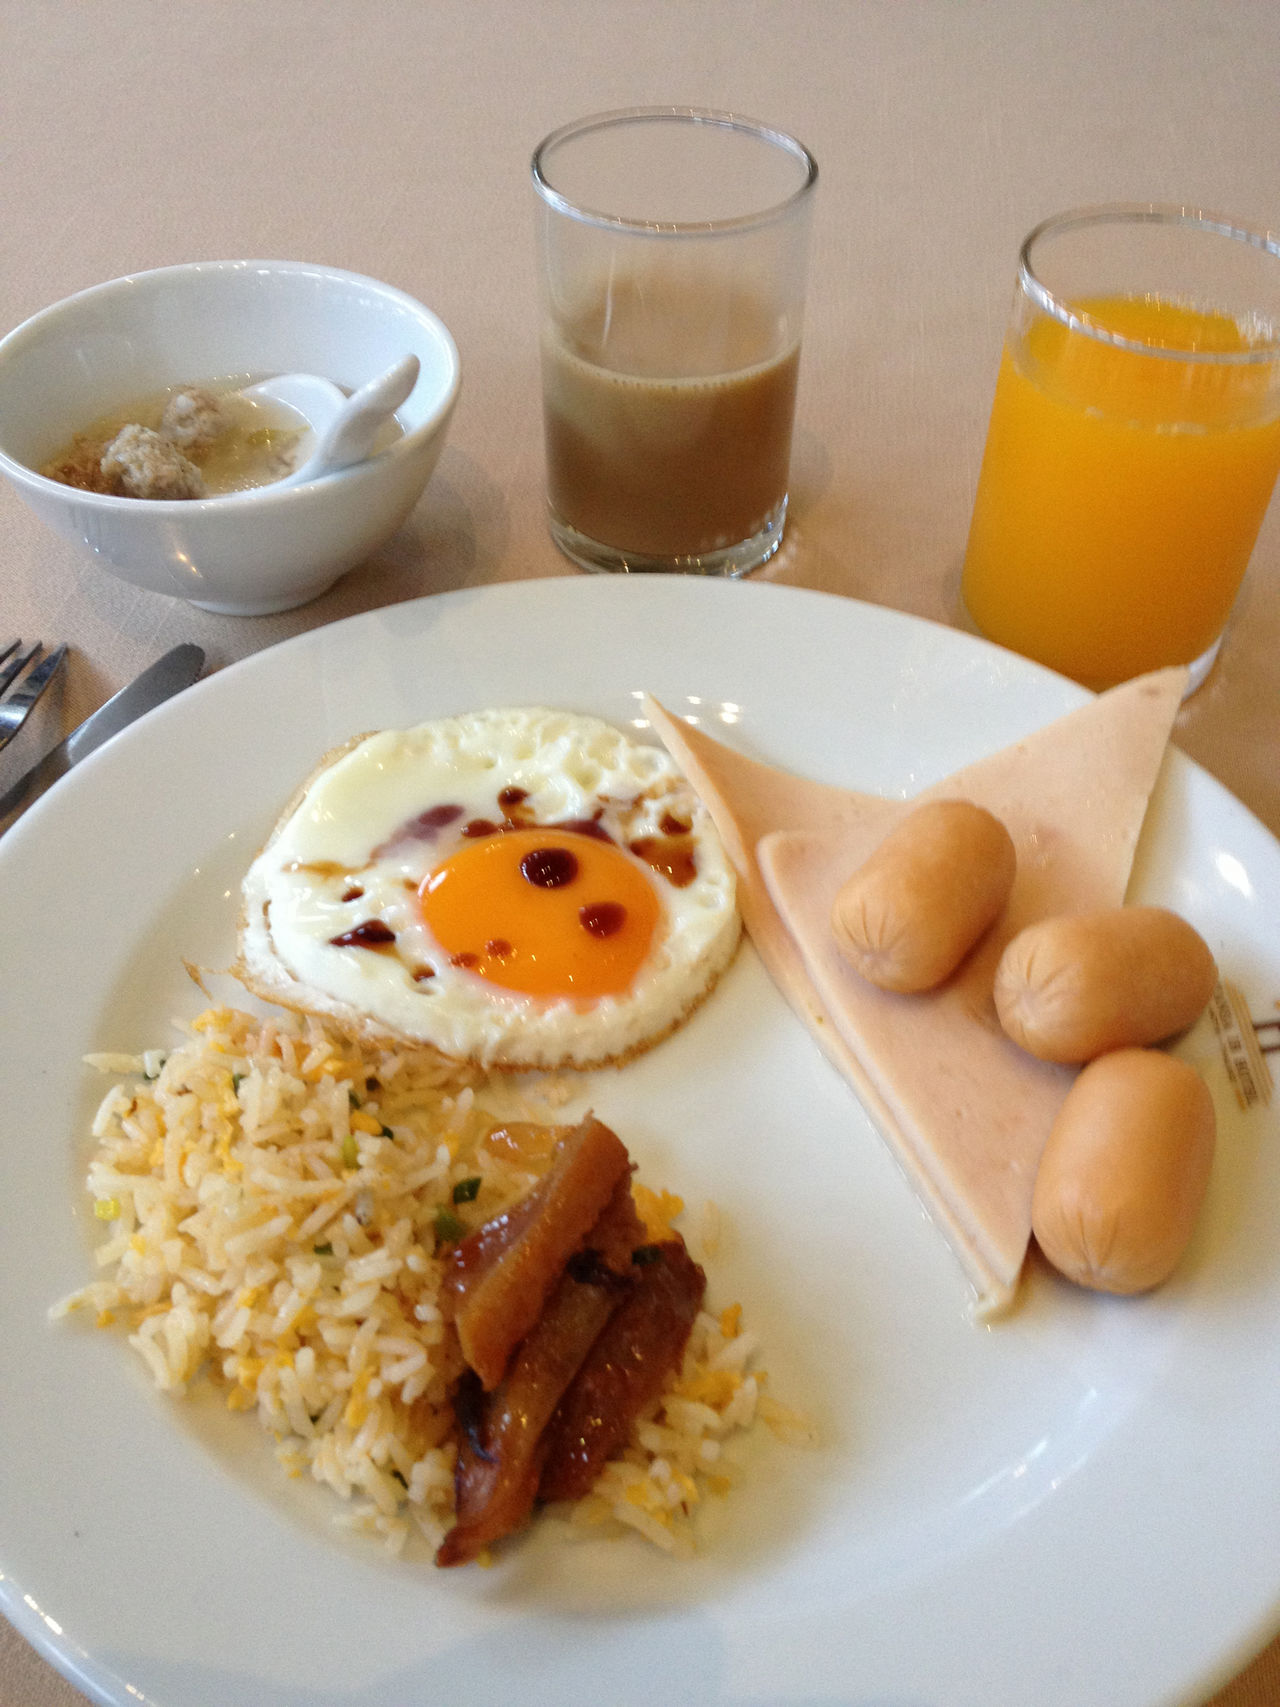 Breakfast Close-up Day Drink Drinking Glass Egg Egg Yolk English Breakfast Food Food And Drink Freshness Fried Egg Healthy Eating Indoors  No People Omelet Orange Juice  Plate Ready-to-eat Sunny Side Up Toasted Bread